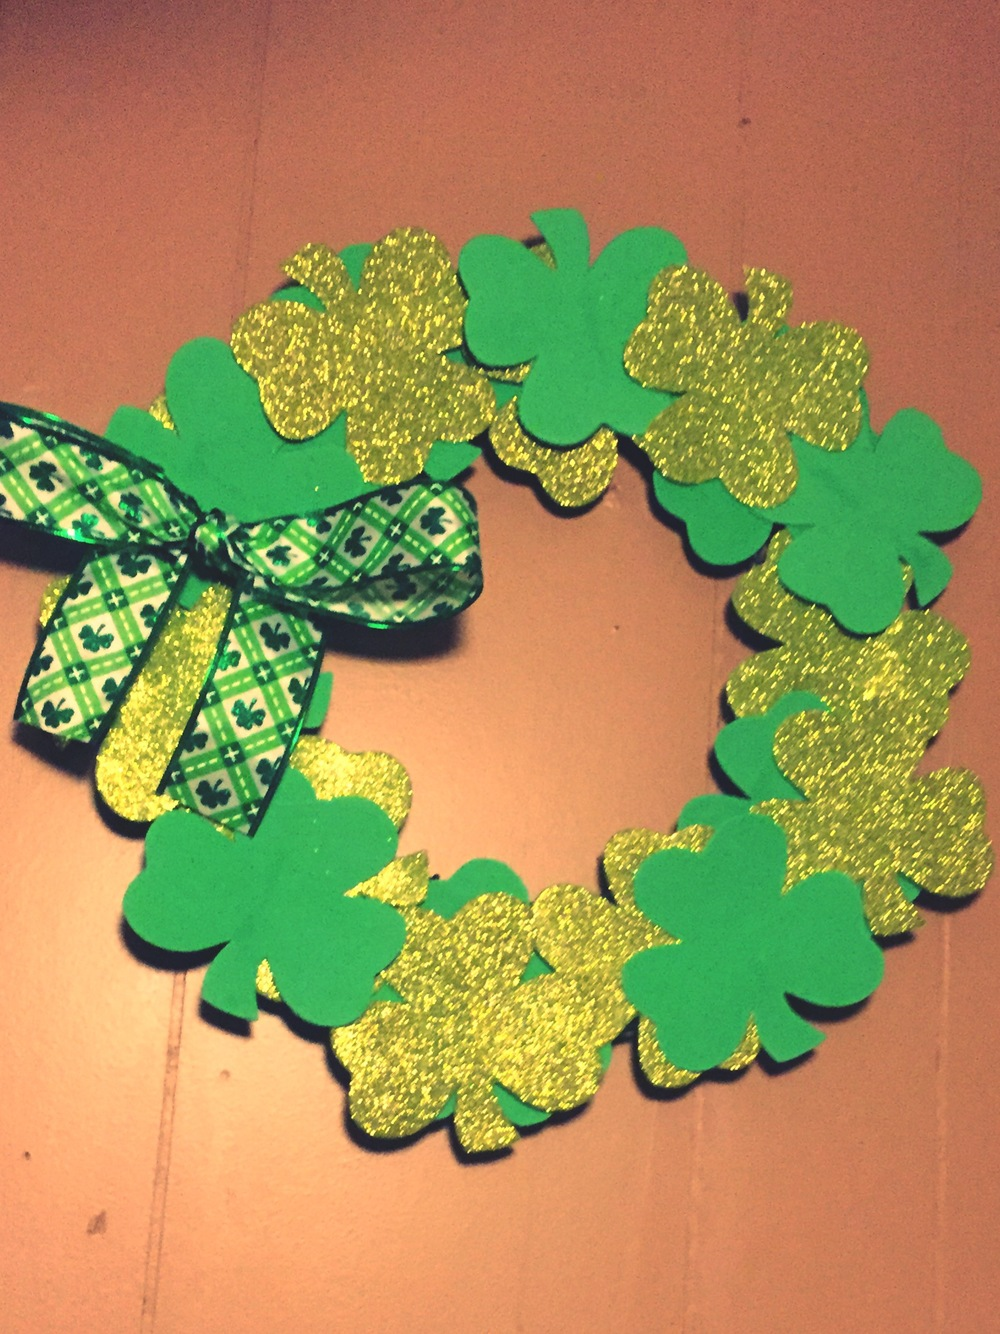 DIY Dollar Store St. Patties Day Wreath Challenge, Fail or Success?